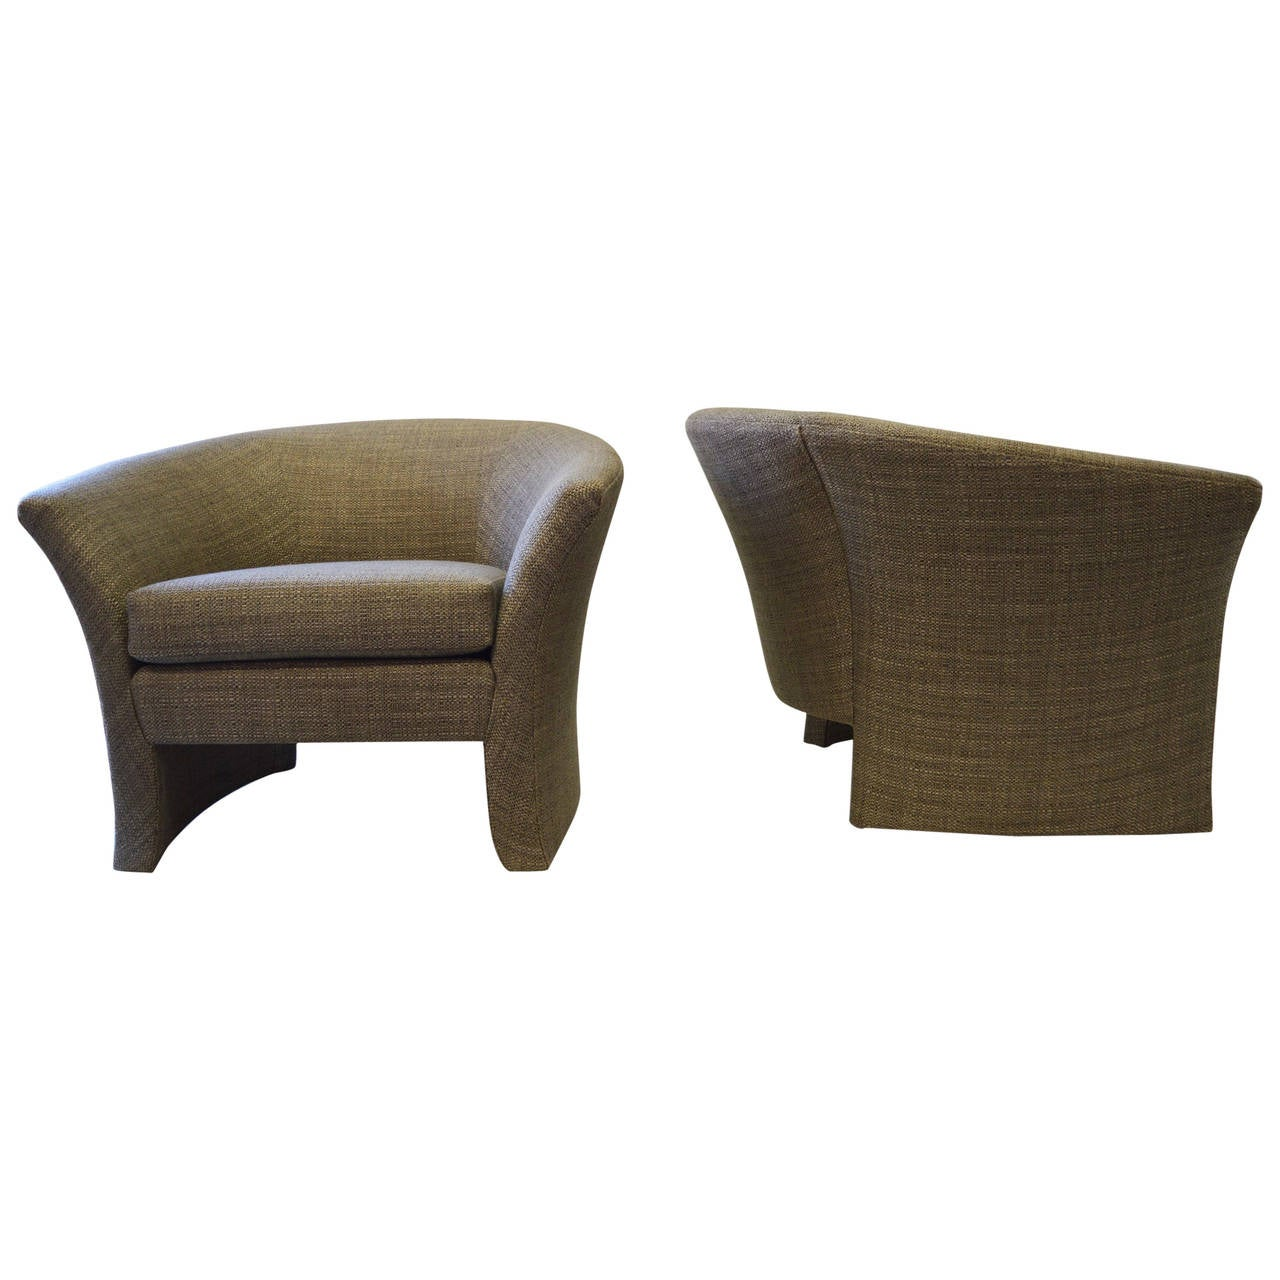 Pair of Architectural Shape Lounge Chairs